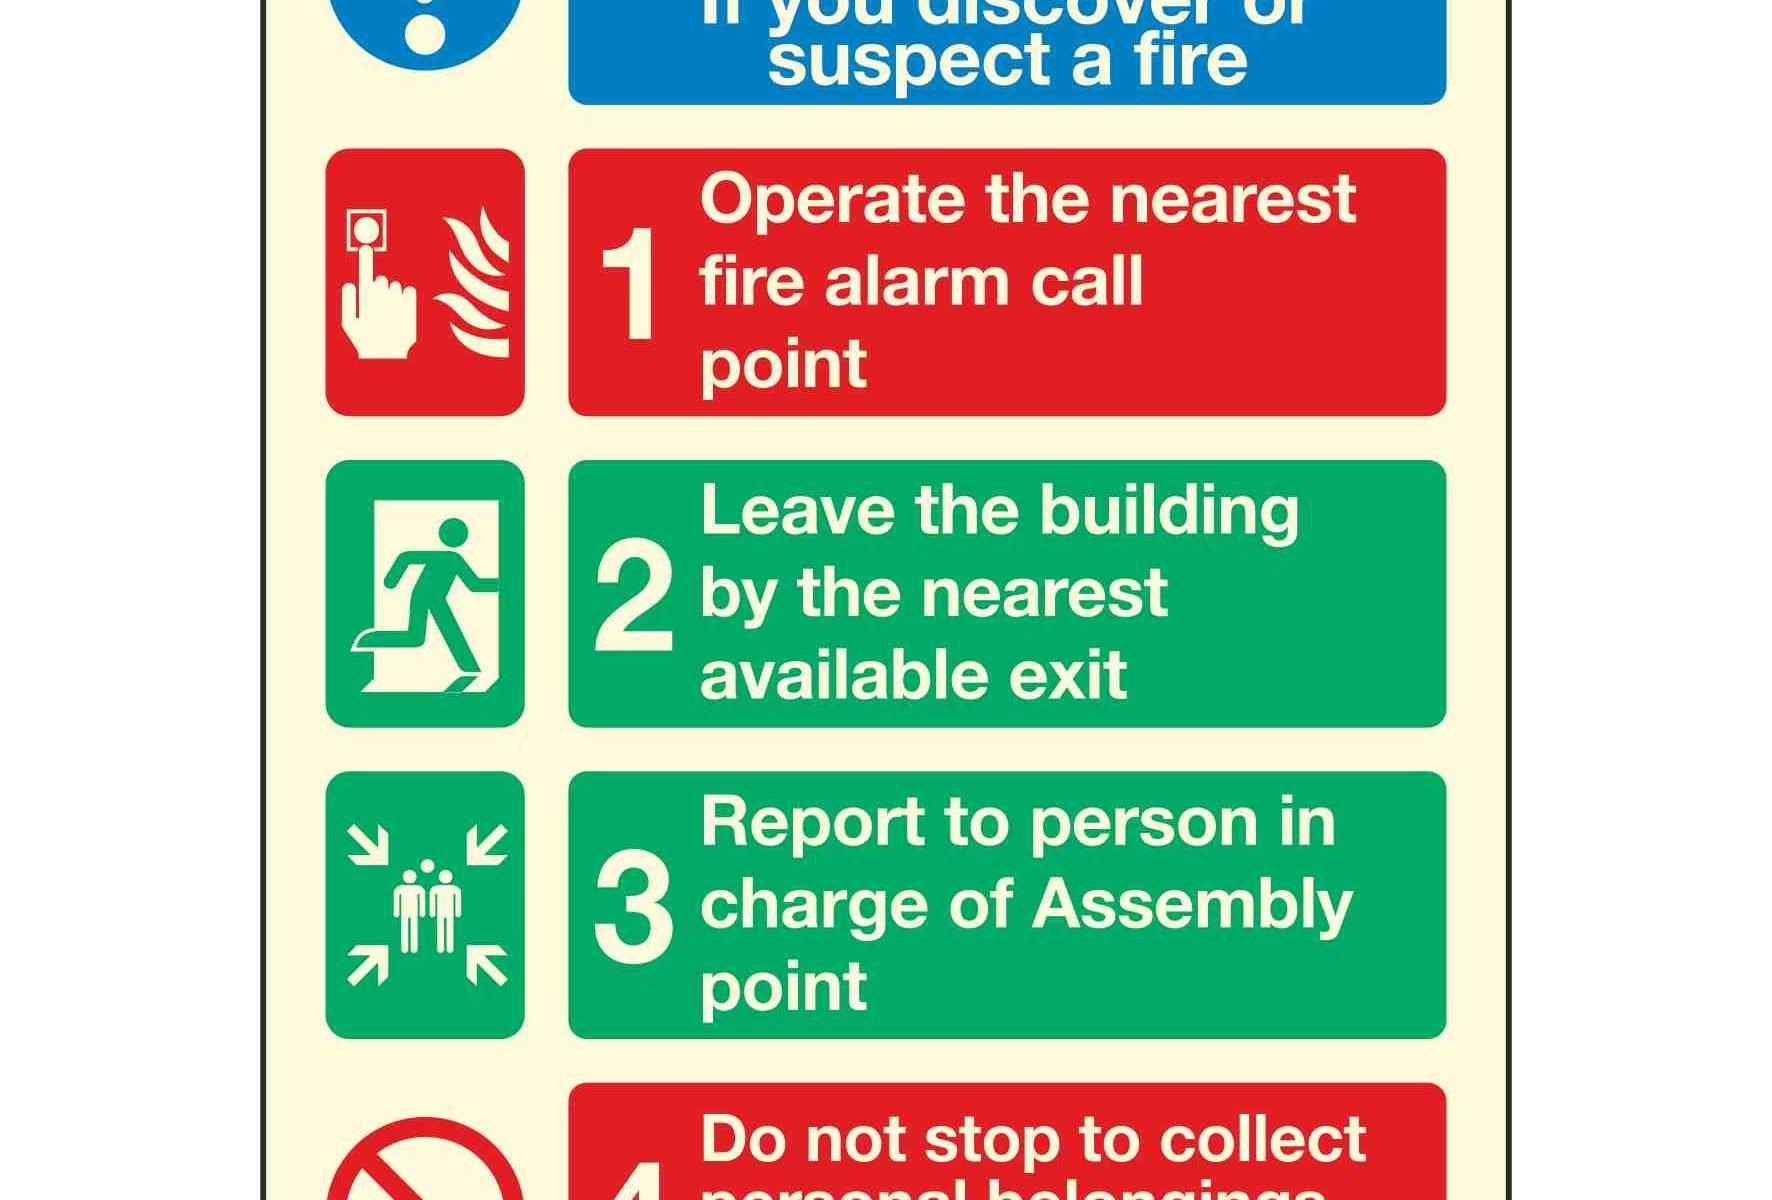 Fire action If you discover or suspect a fire 1 Operate the nearest fire alarm call point 2 Leave the building by the nearest available exit